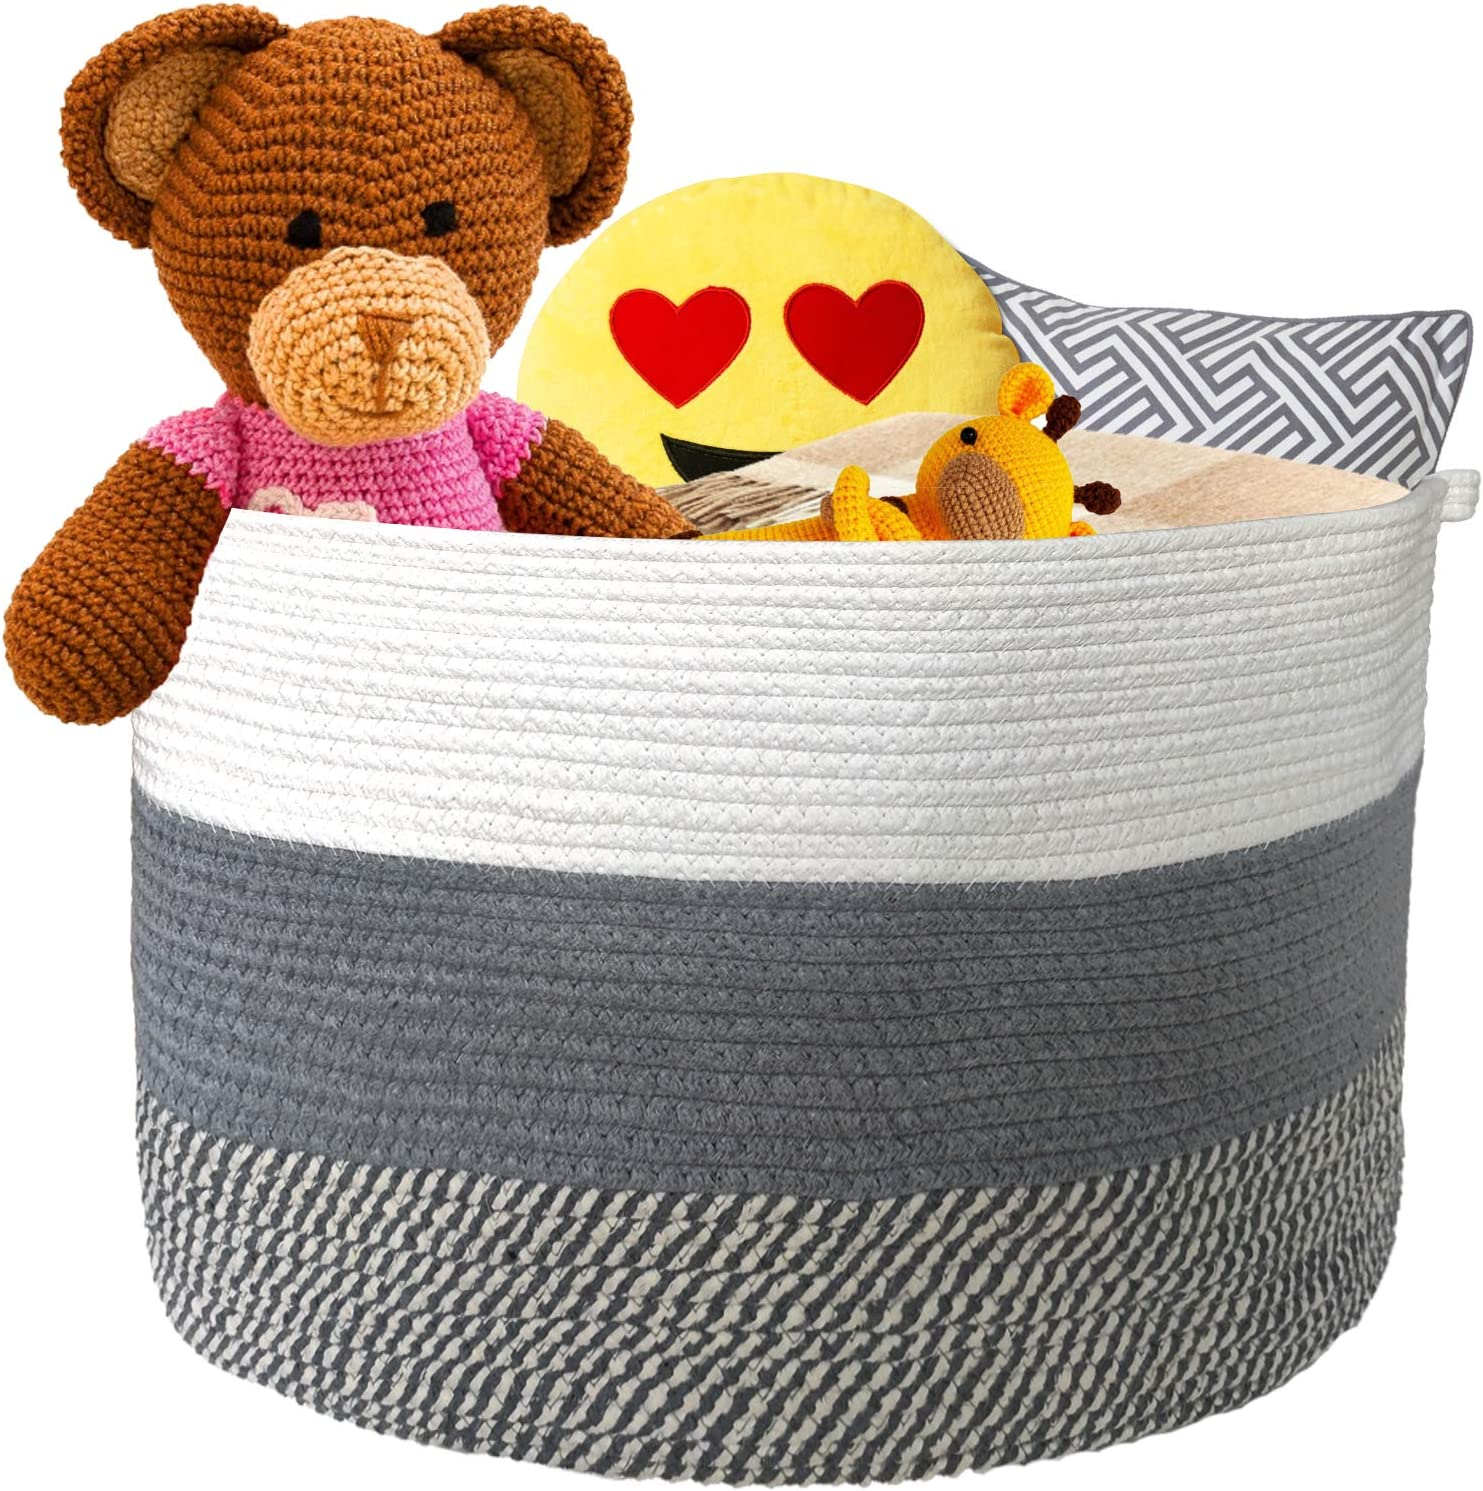 Wintao Cotton Rope Basket Woven Natural Grey and white Bins  Baby bathroom  23